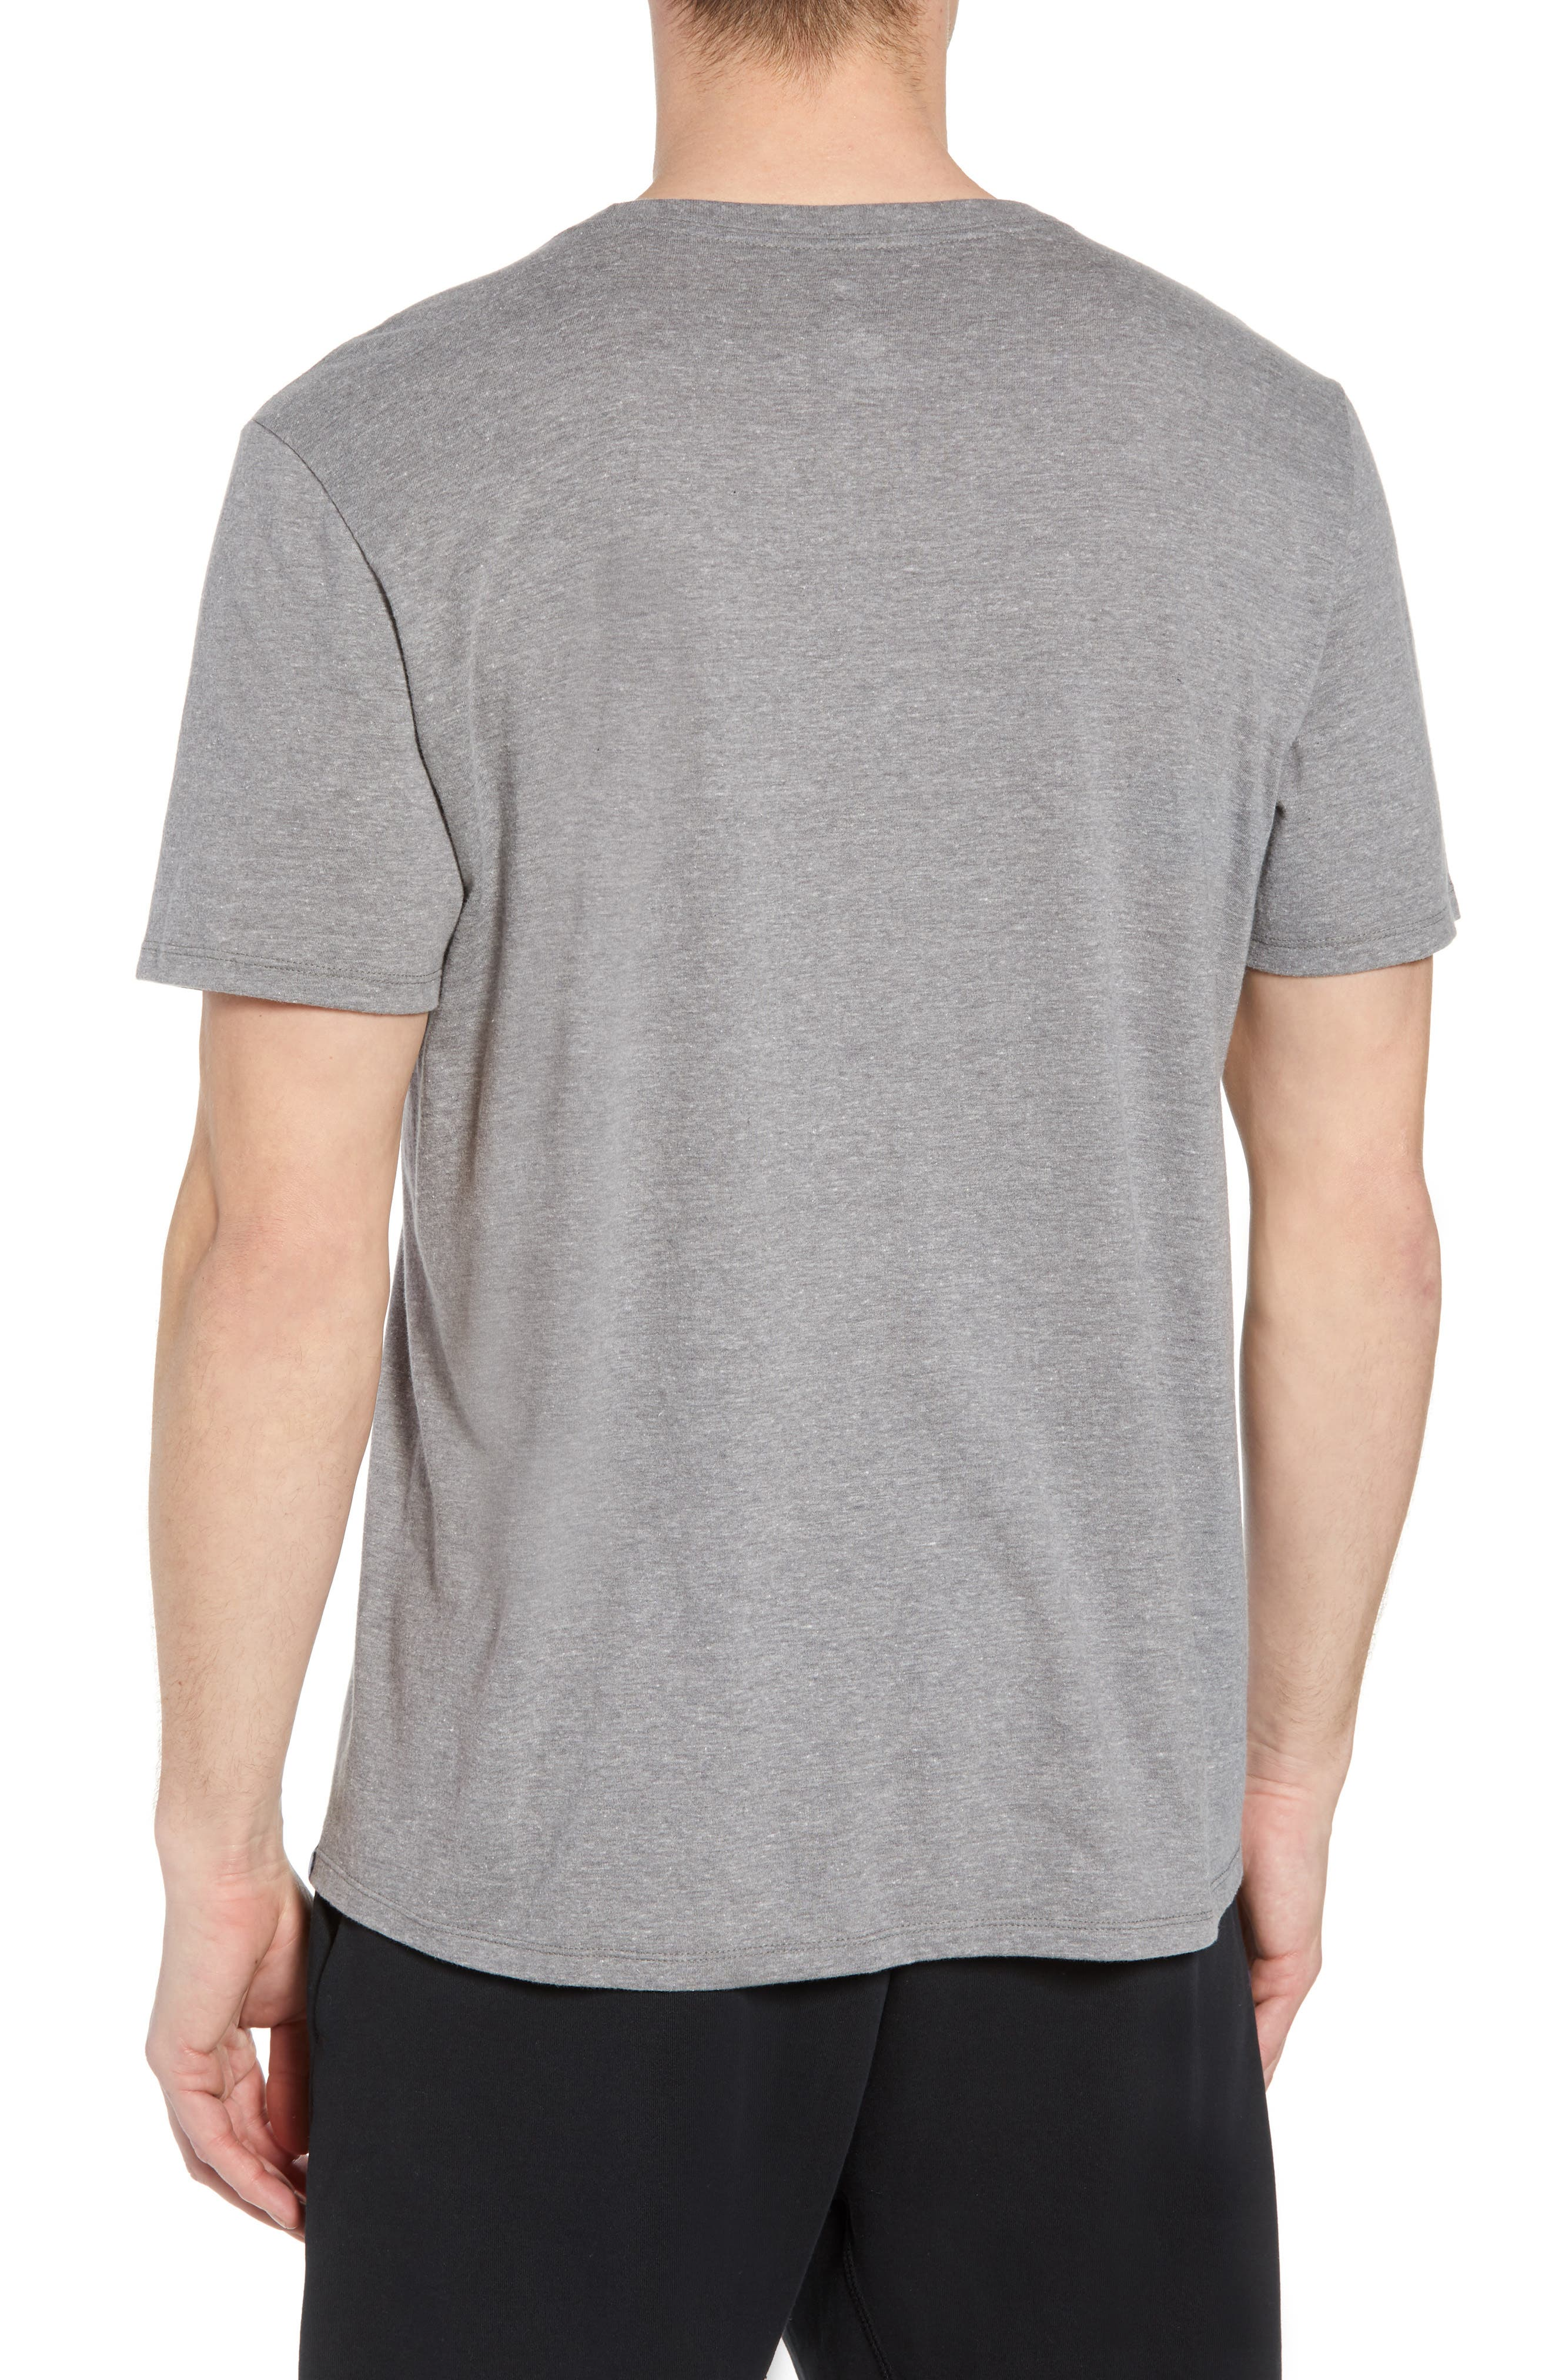 Nike Jumpman Tee,                             Alternate thumbnail 2, color,                             CARBON HEATHER